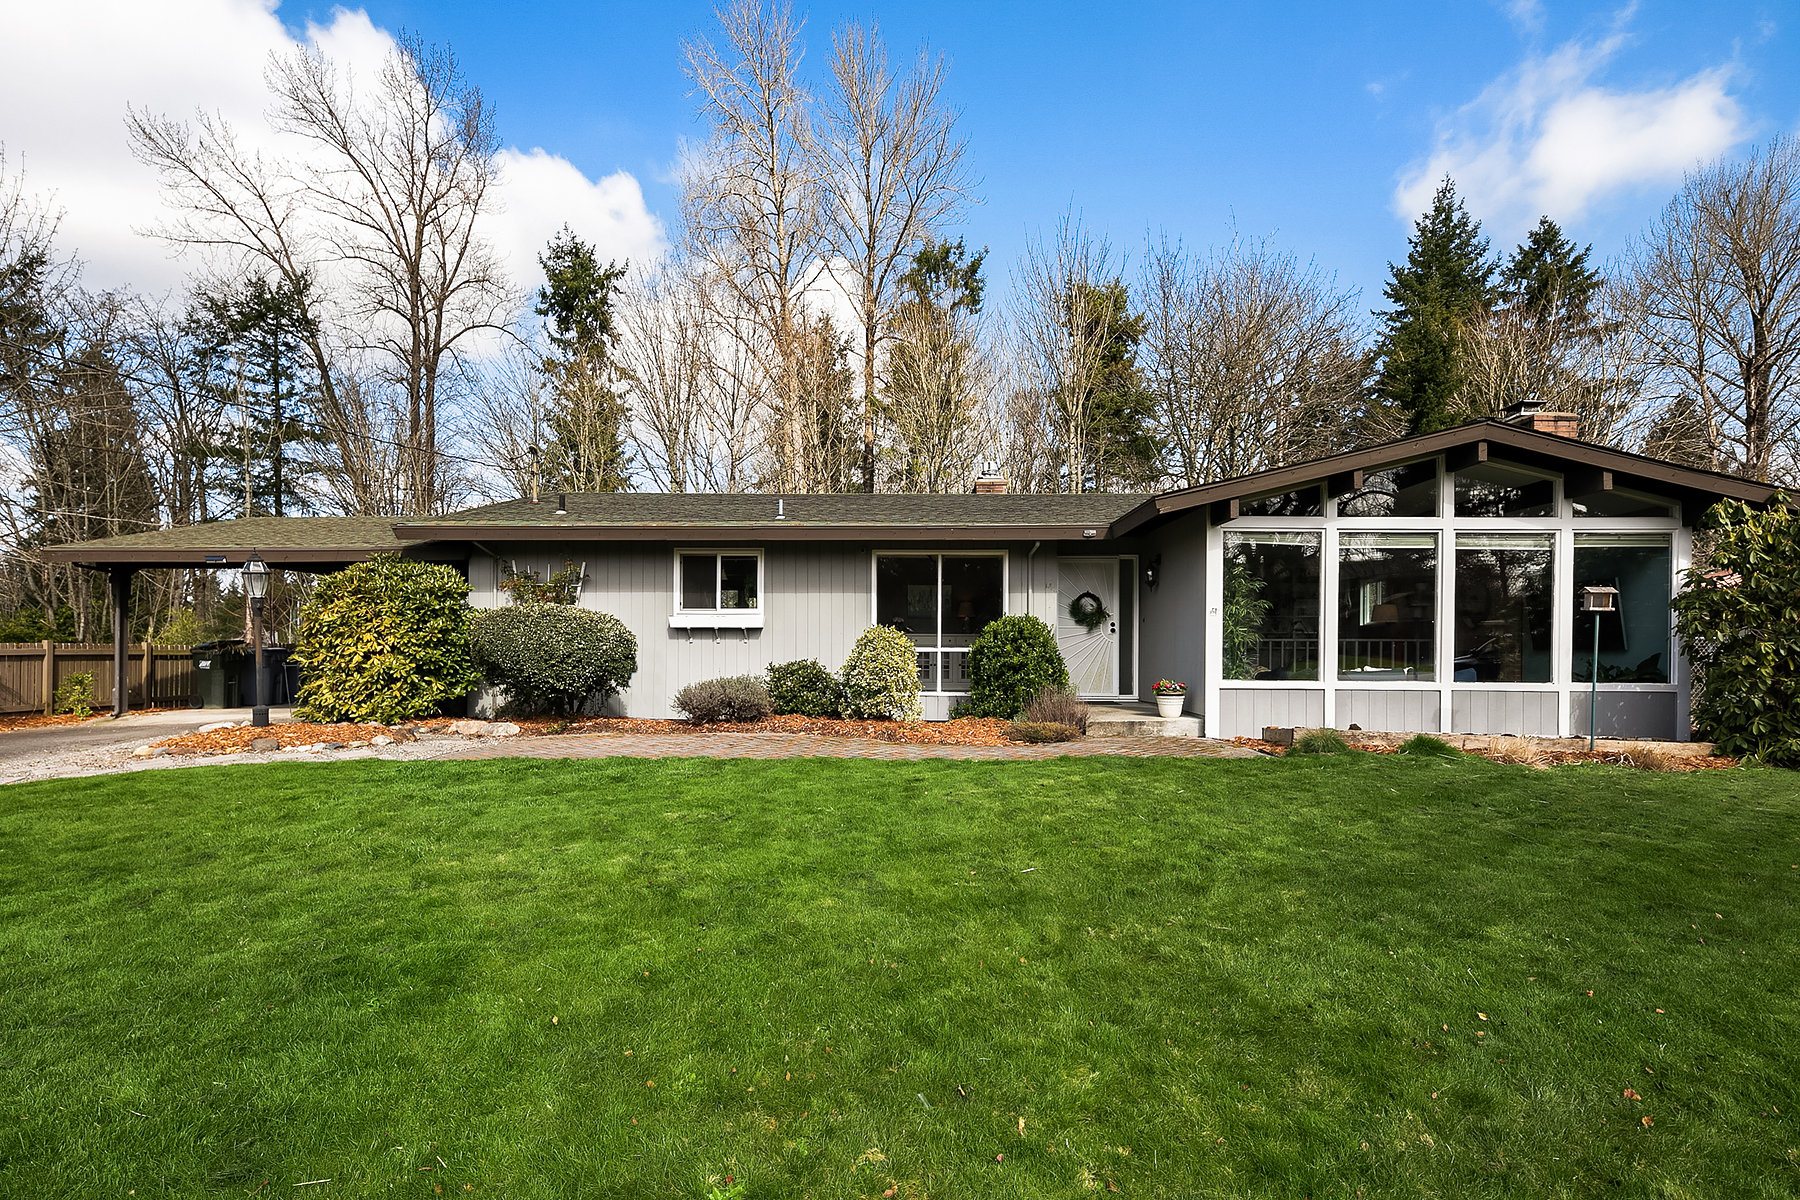 Single Family Homes for Sale at Stunning Mid-Century in East Hill 11636 SE 227th Pl Kent, Washington 98031 United States